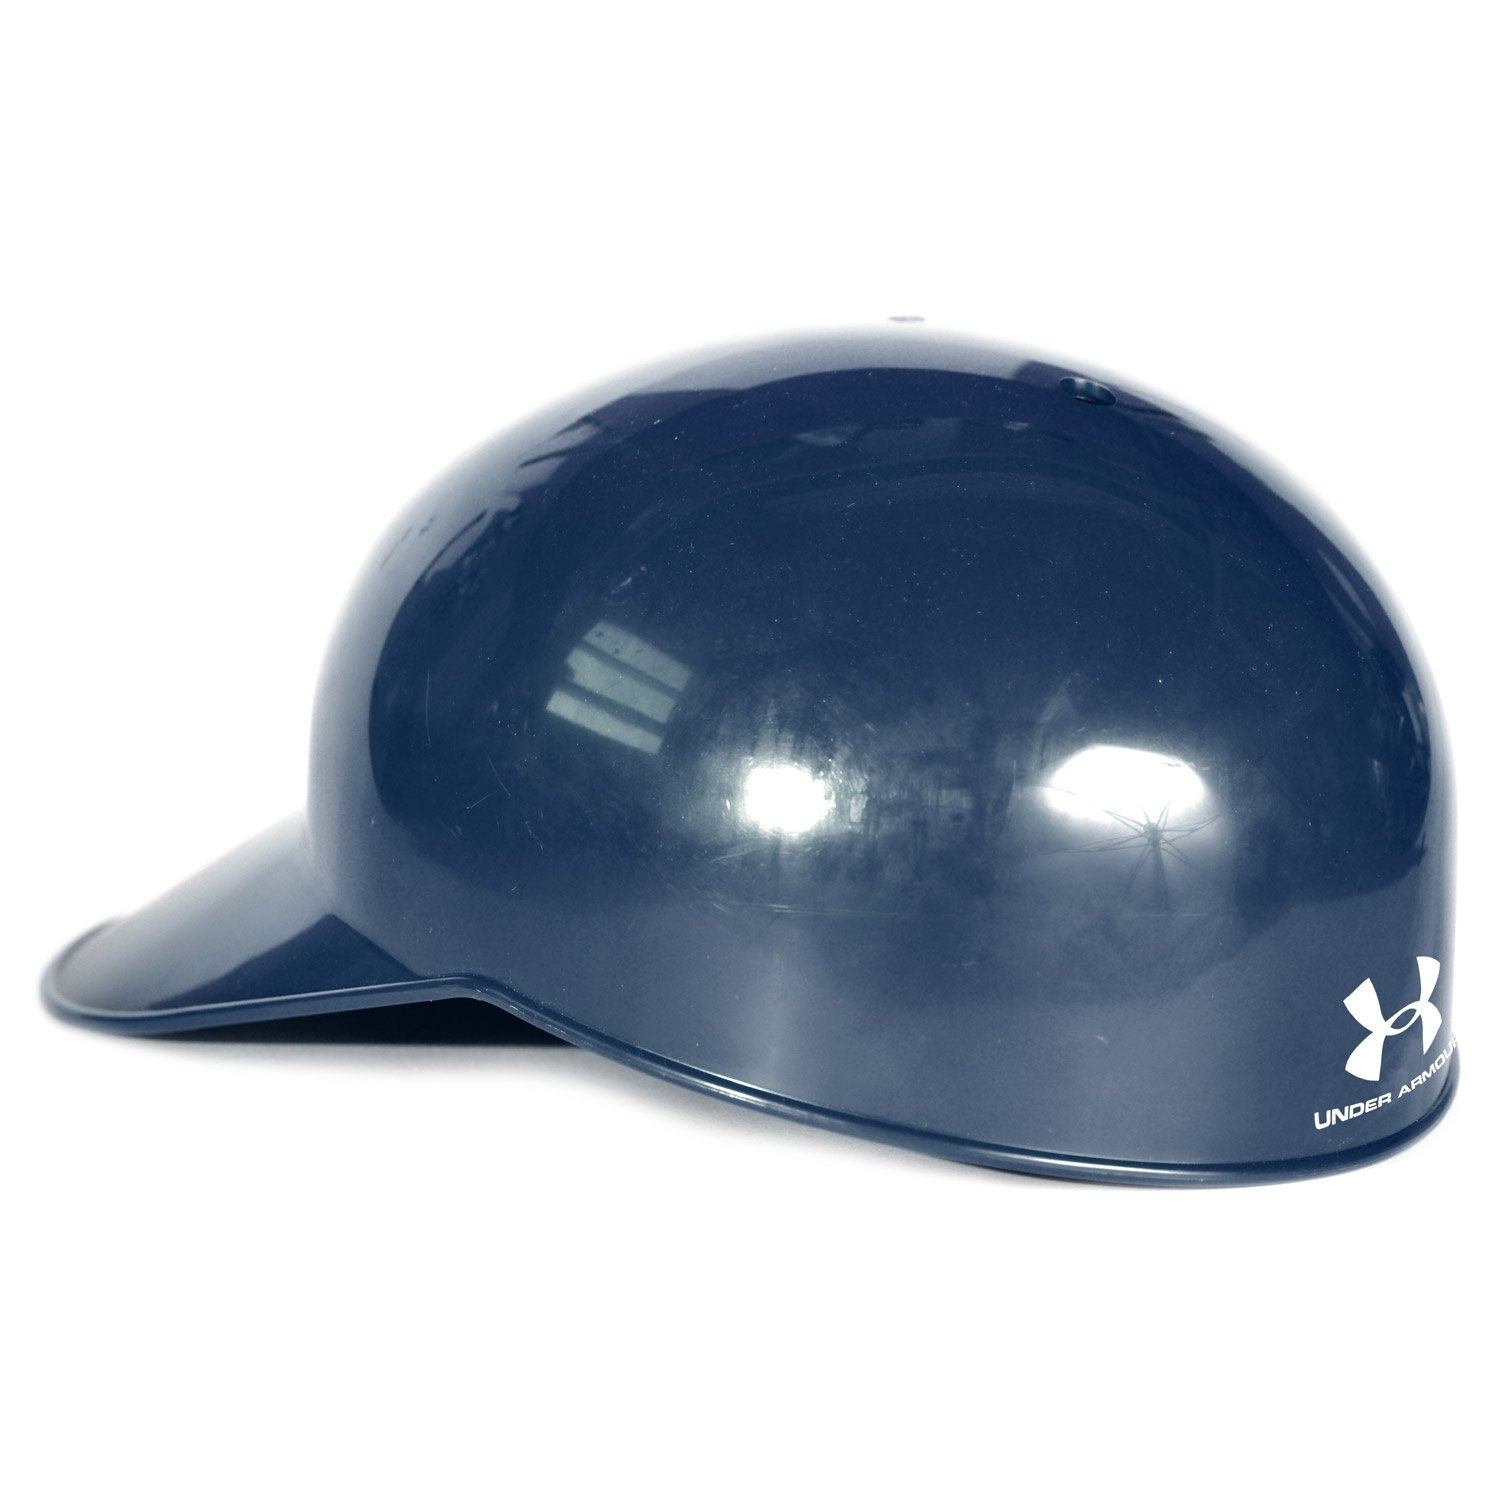 Under Armour UA Classic Pro Baseball Skull Cap by Under Armour